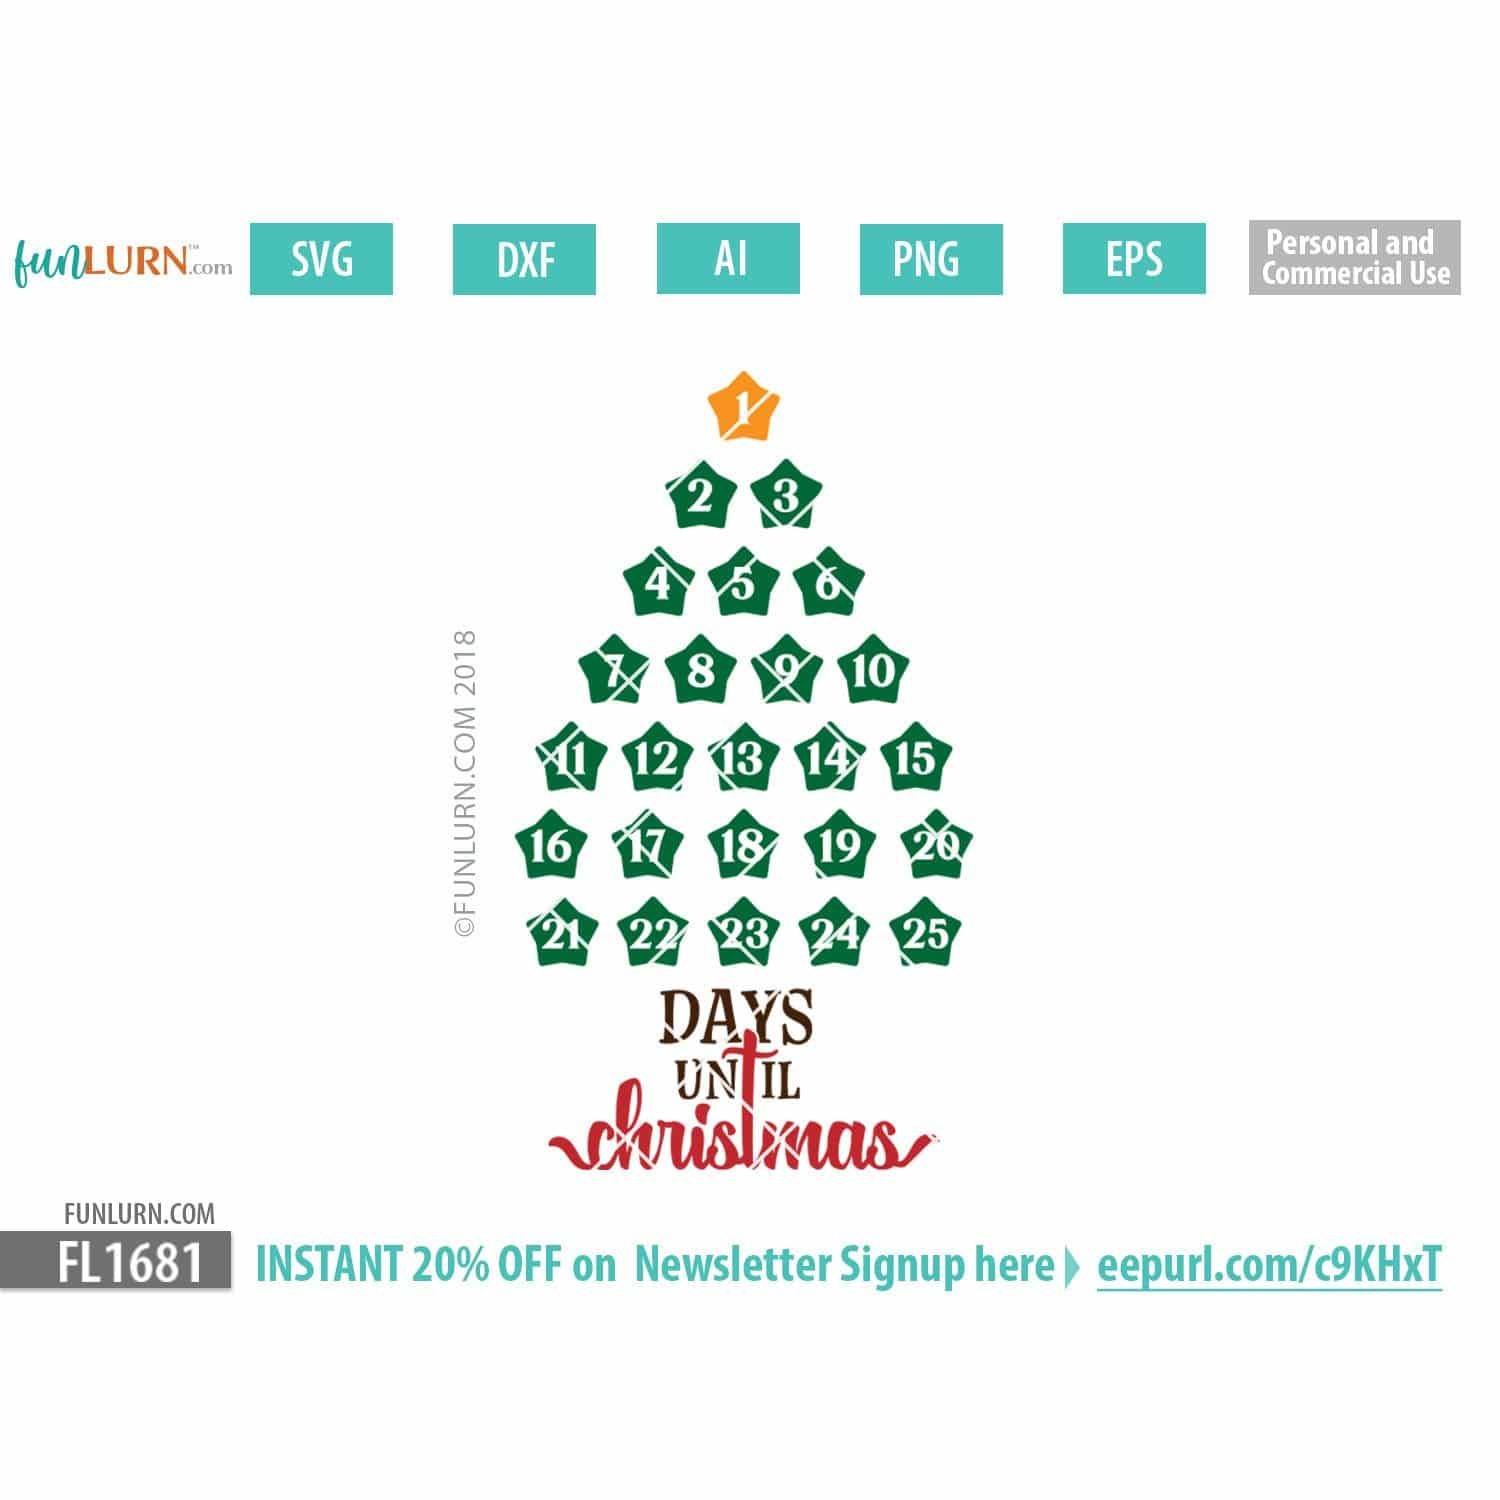 Days Until Christmas.Days Until Christmas Svg Christmas Tree